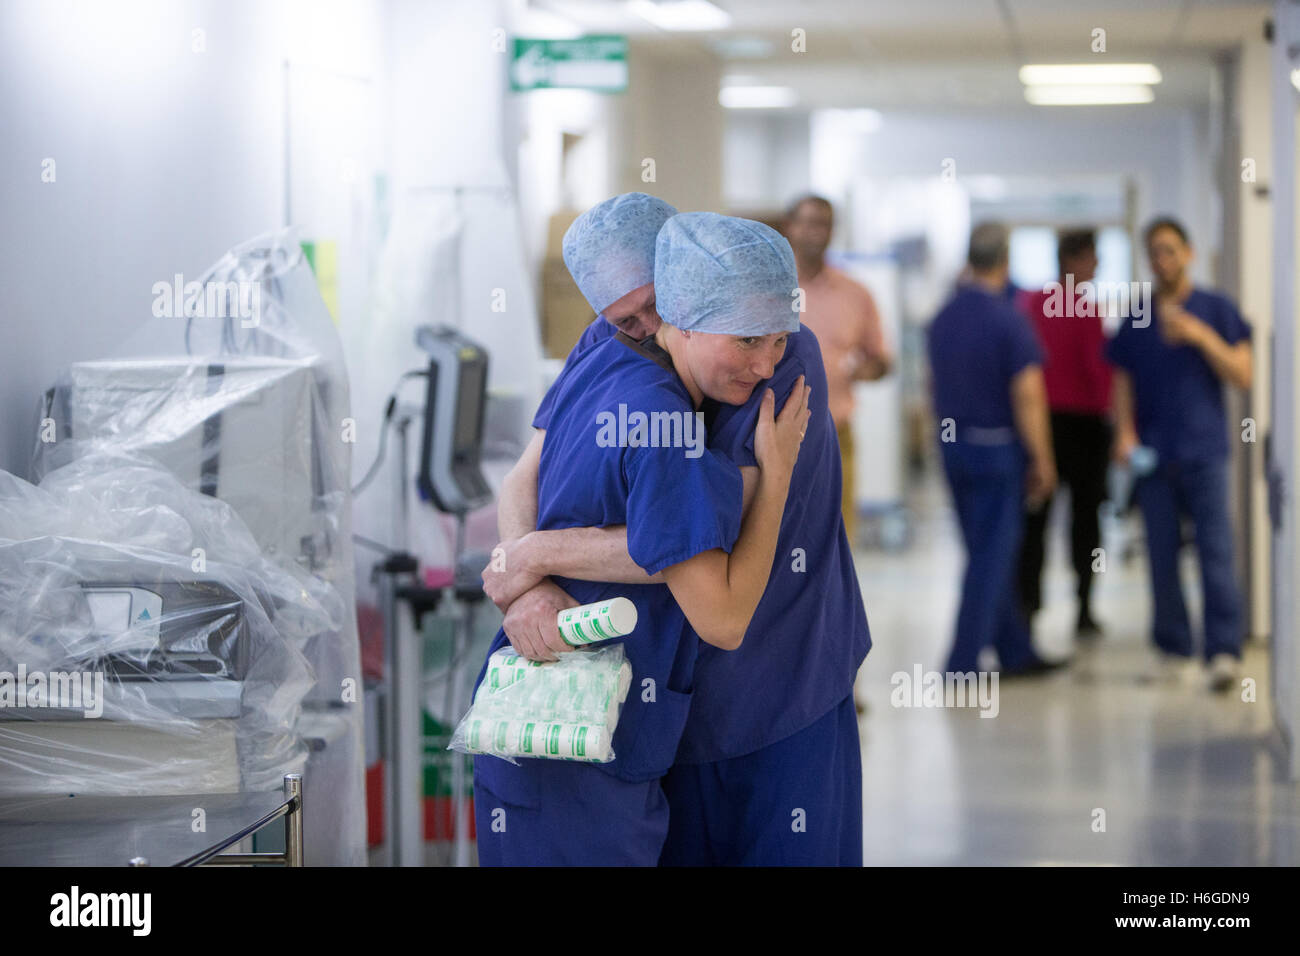 2 doctors hug each other in an NHS hospital corridor after a successful operation - Stock Image